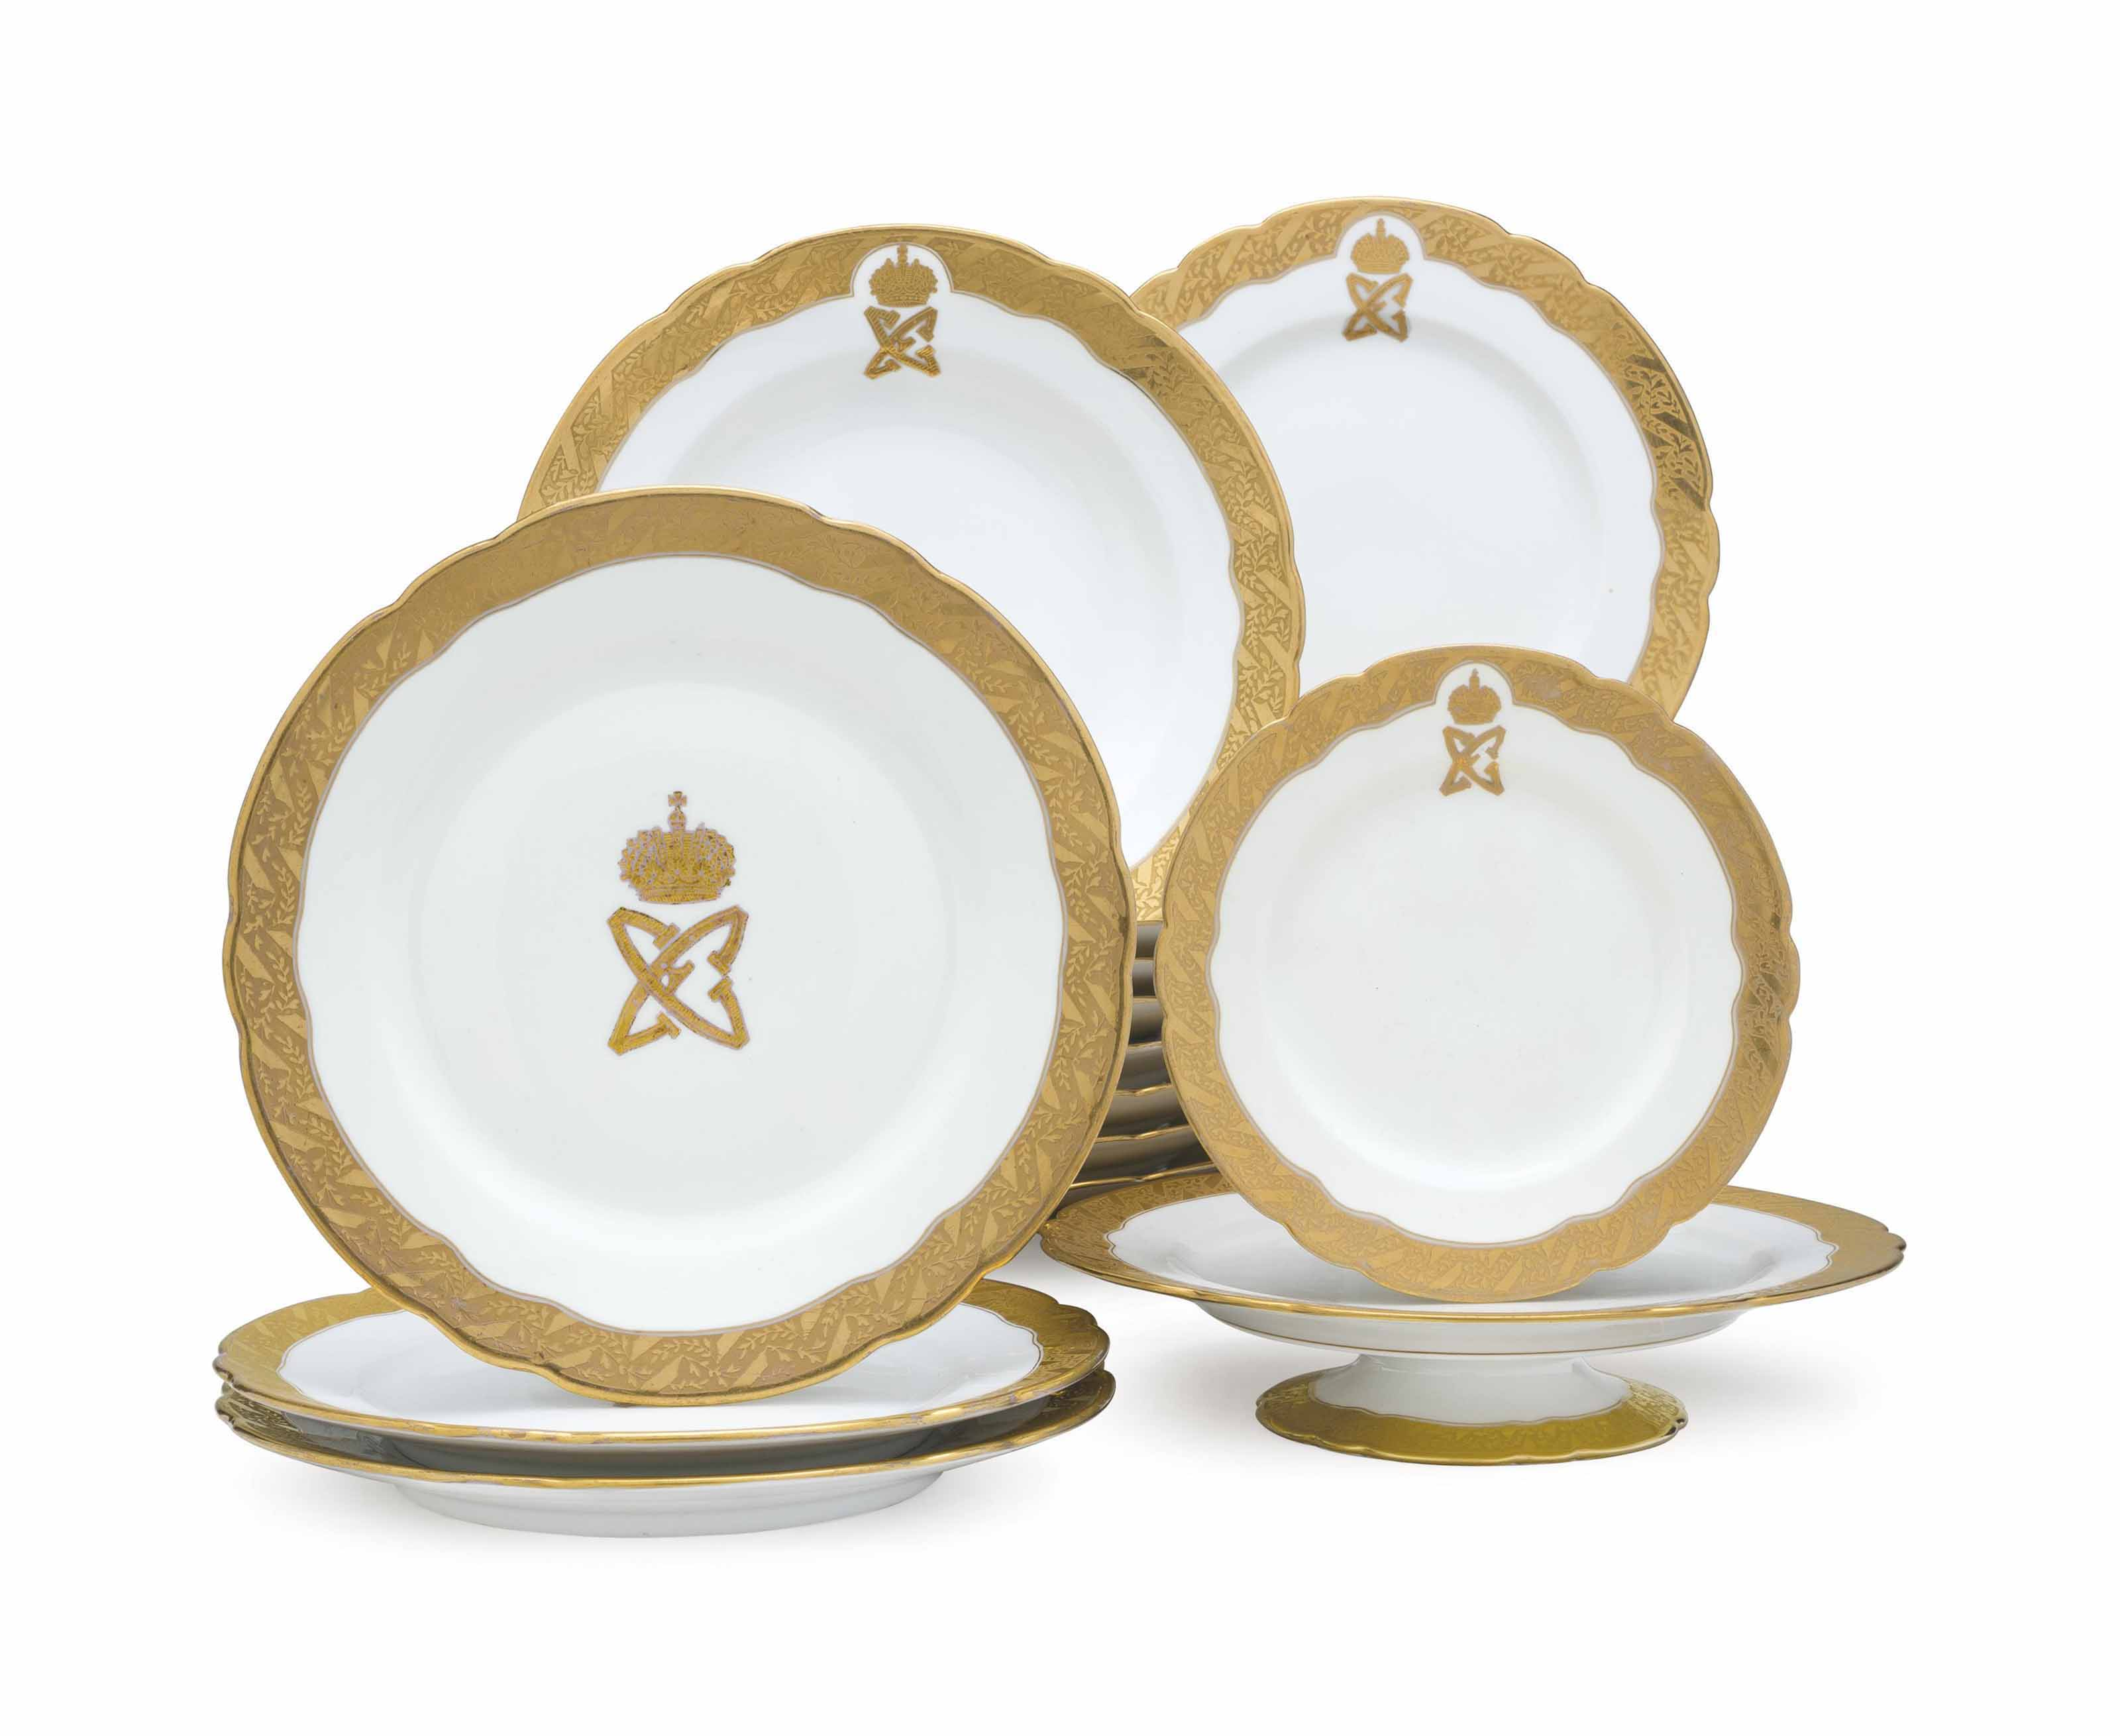 AN ASSEMBLED RUSSIAN AND FRENCH PORCELAIN PART TABLE SERVICE